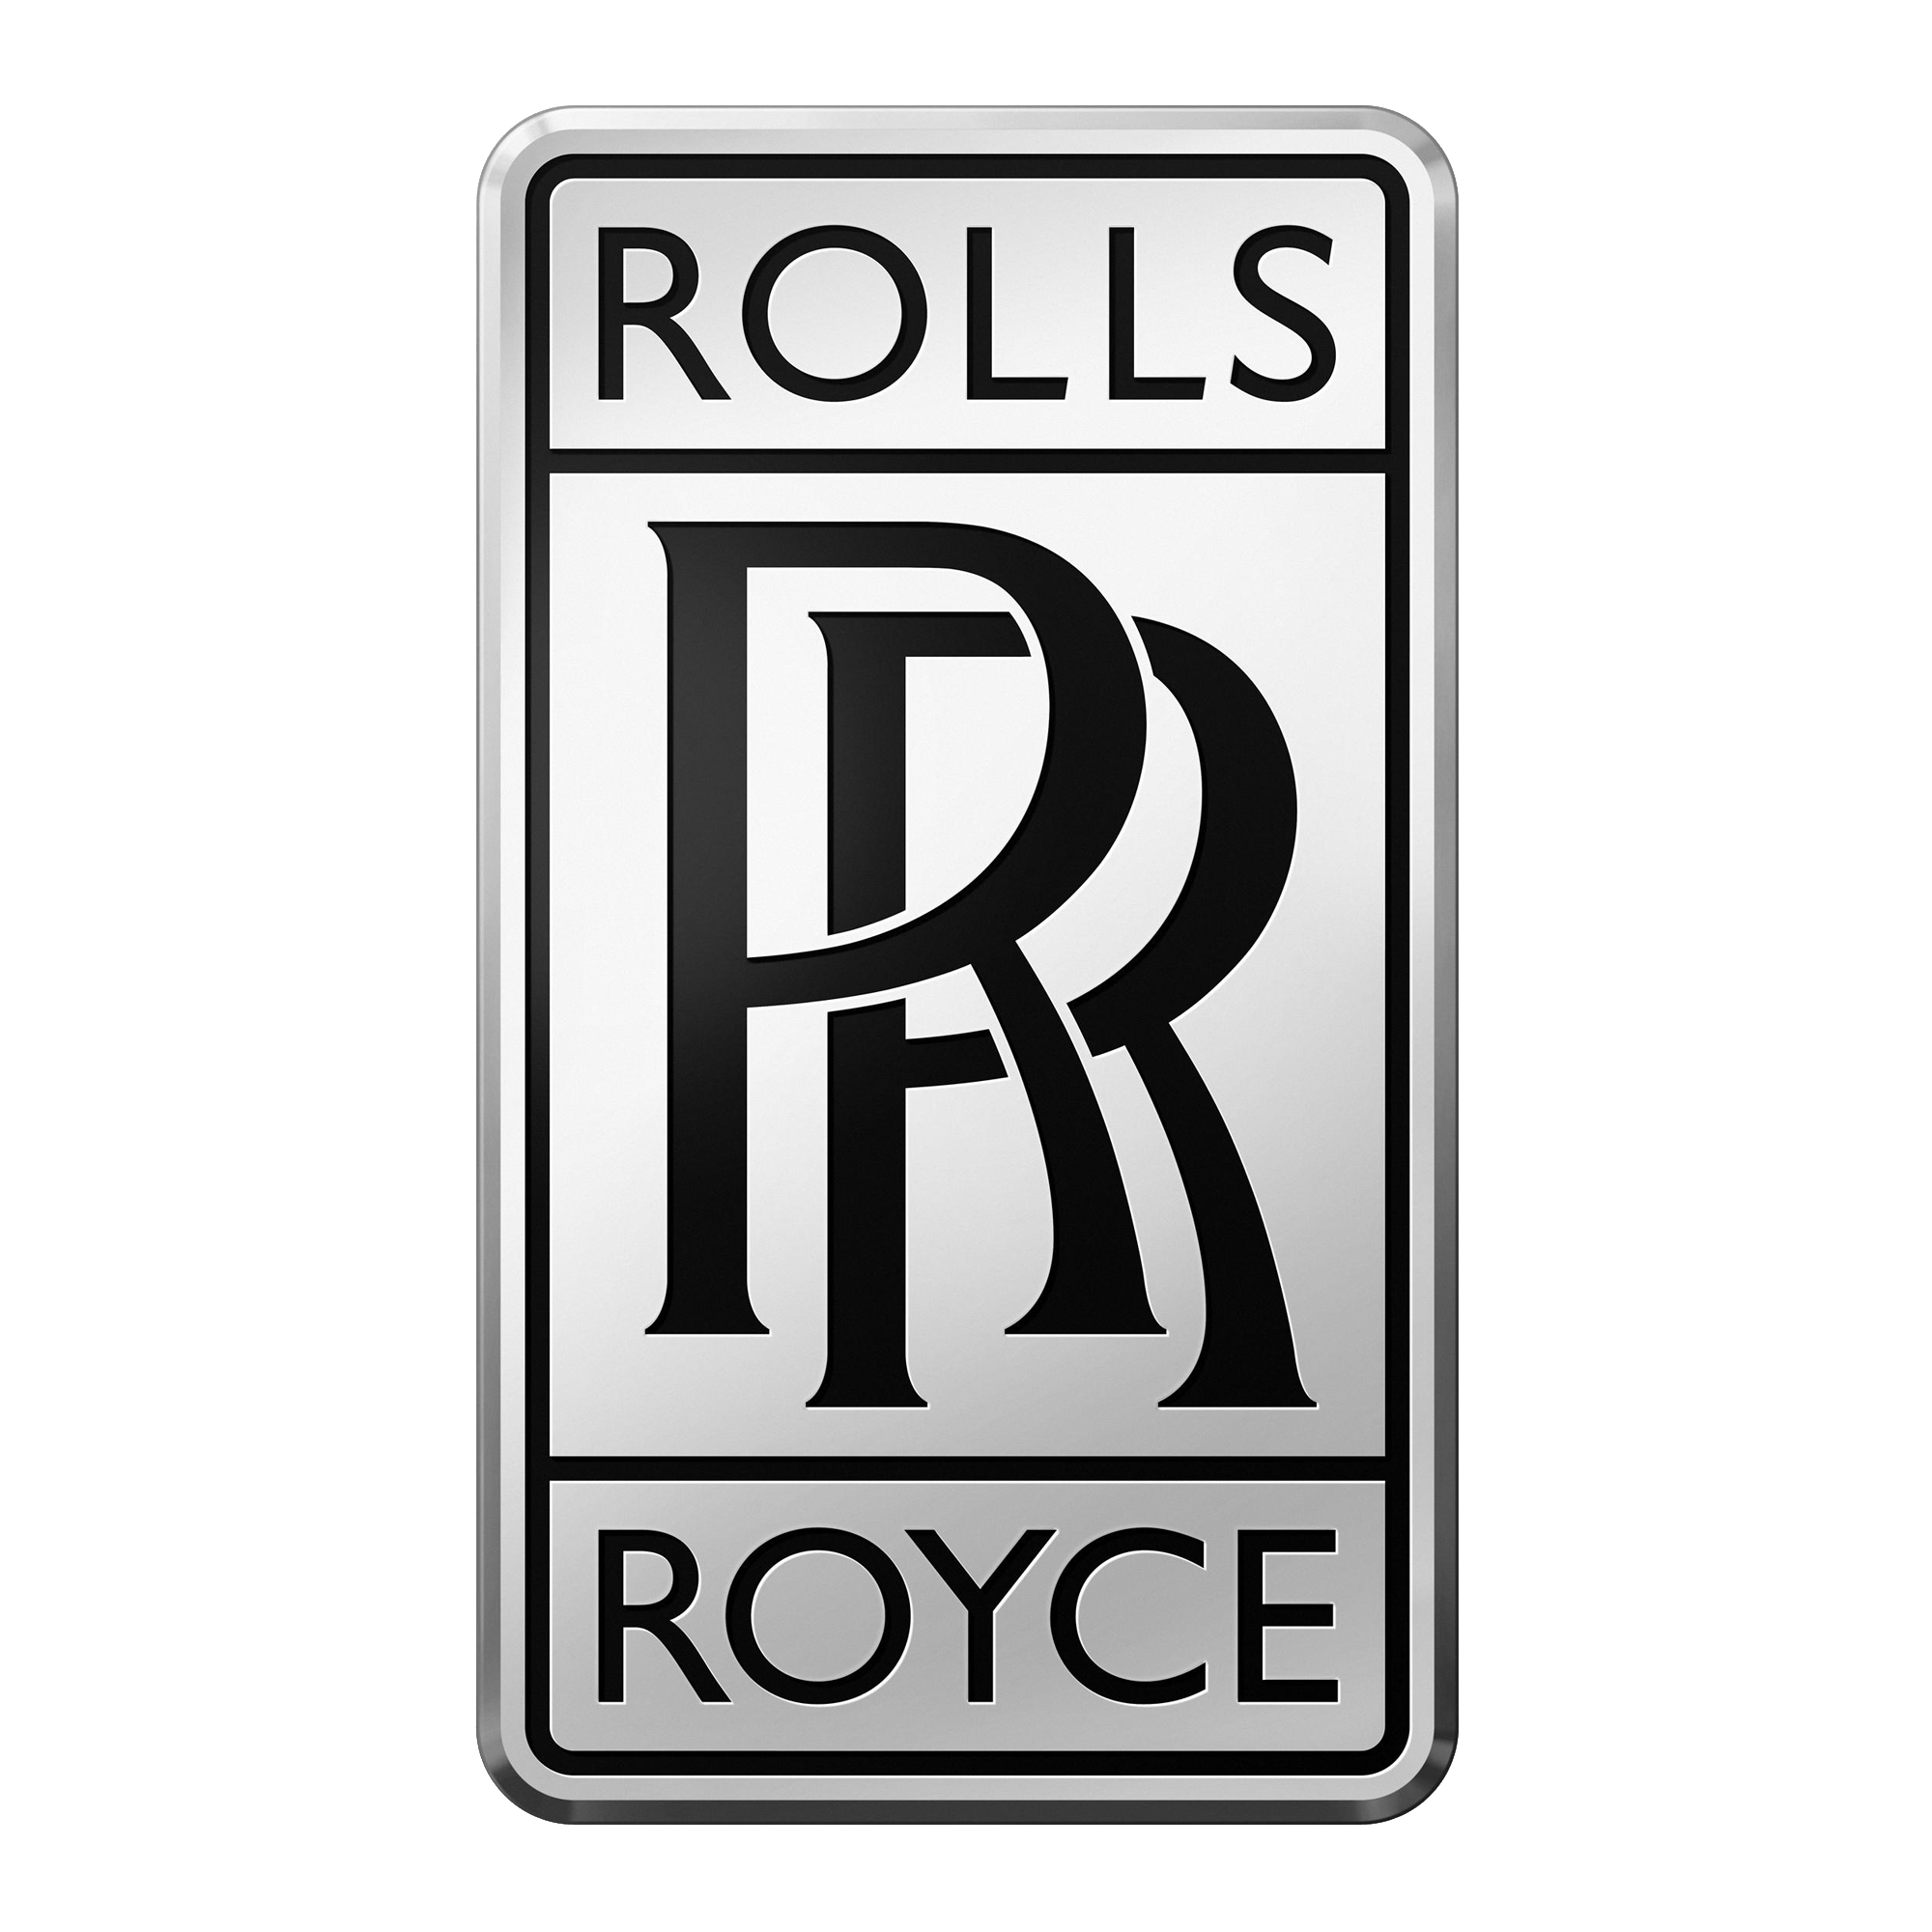 Image result for rolls royce logo